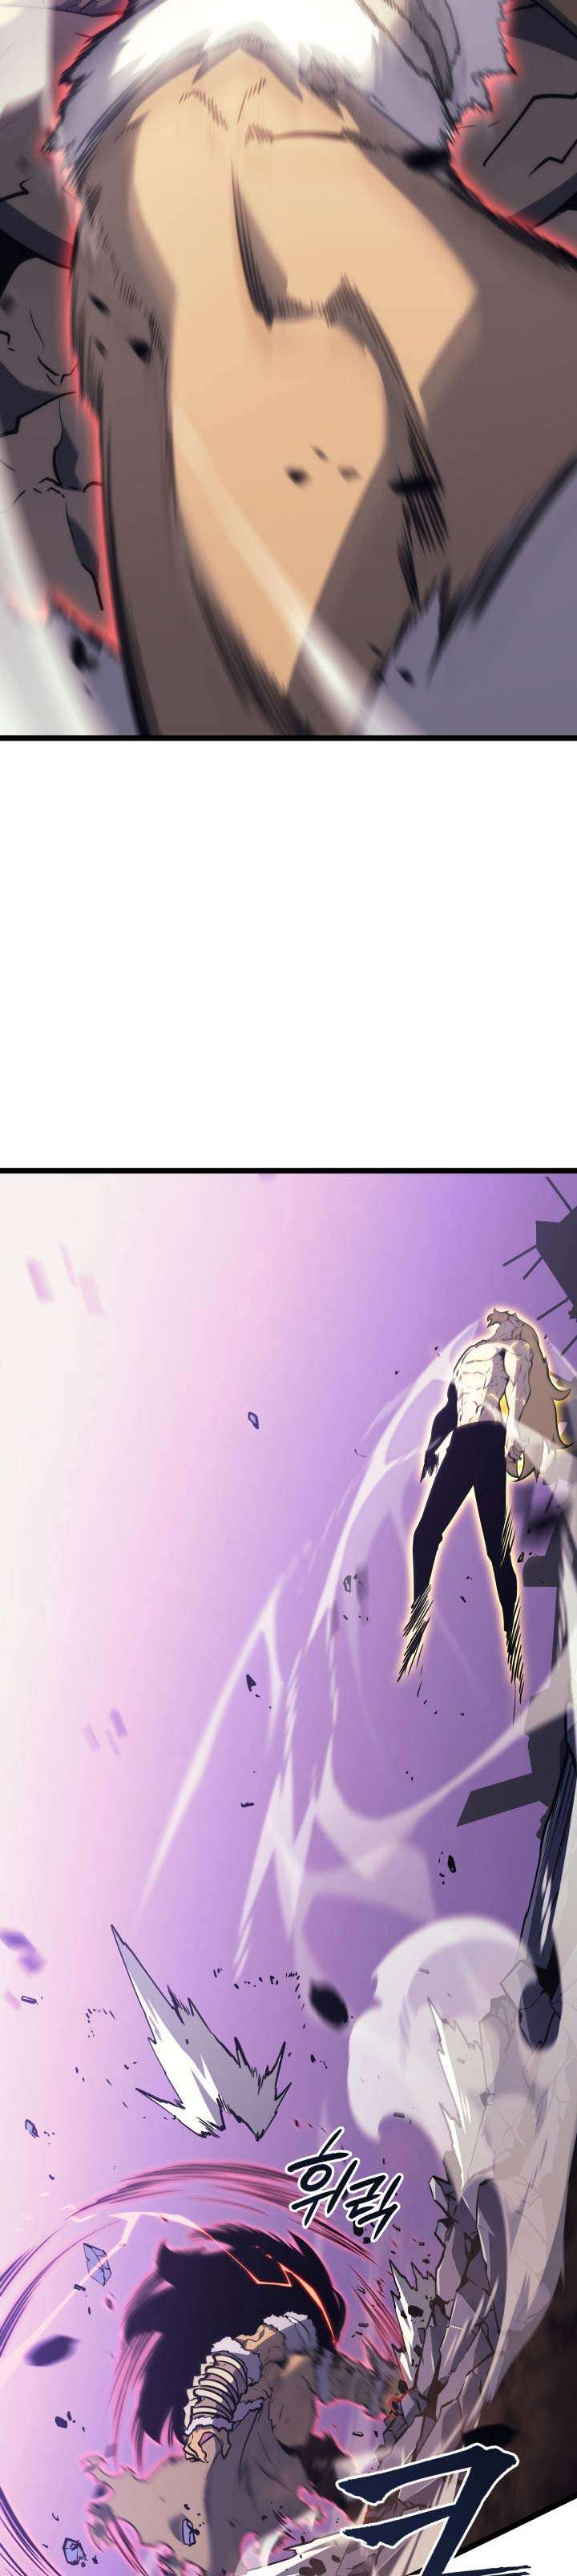 Solo Leveling Chapter 157